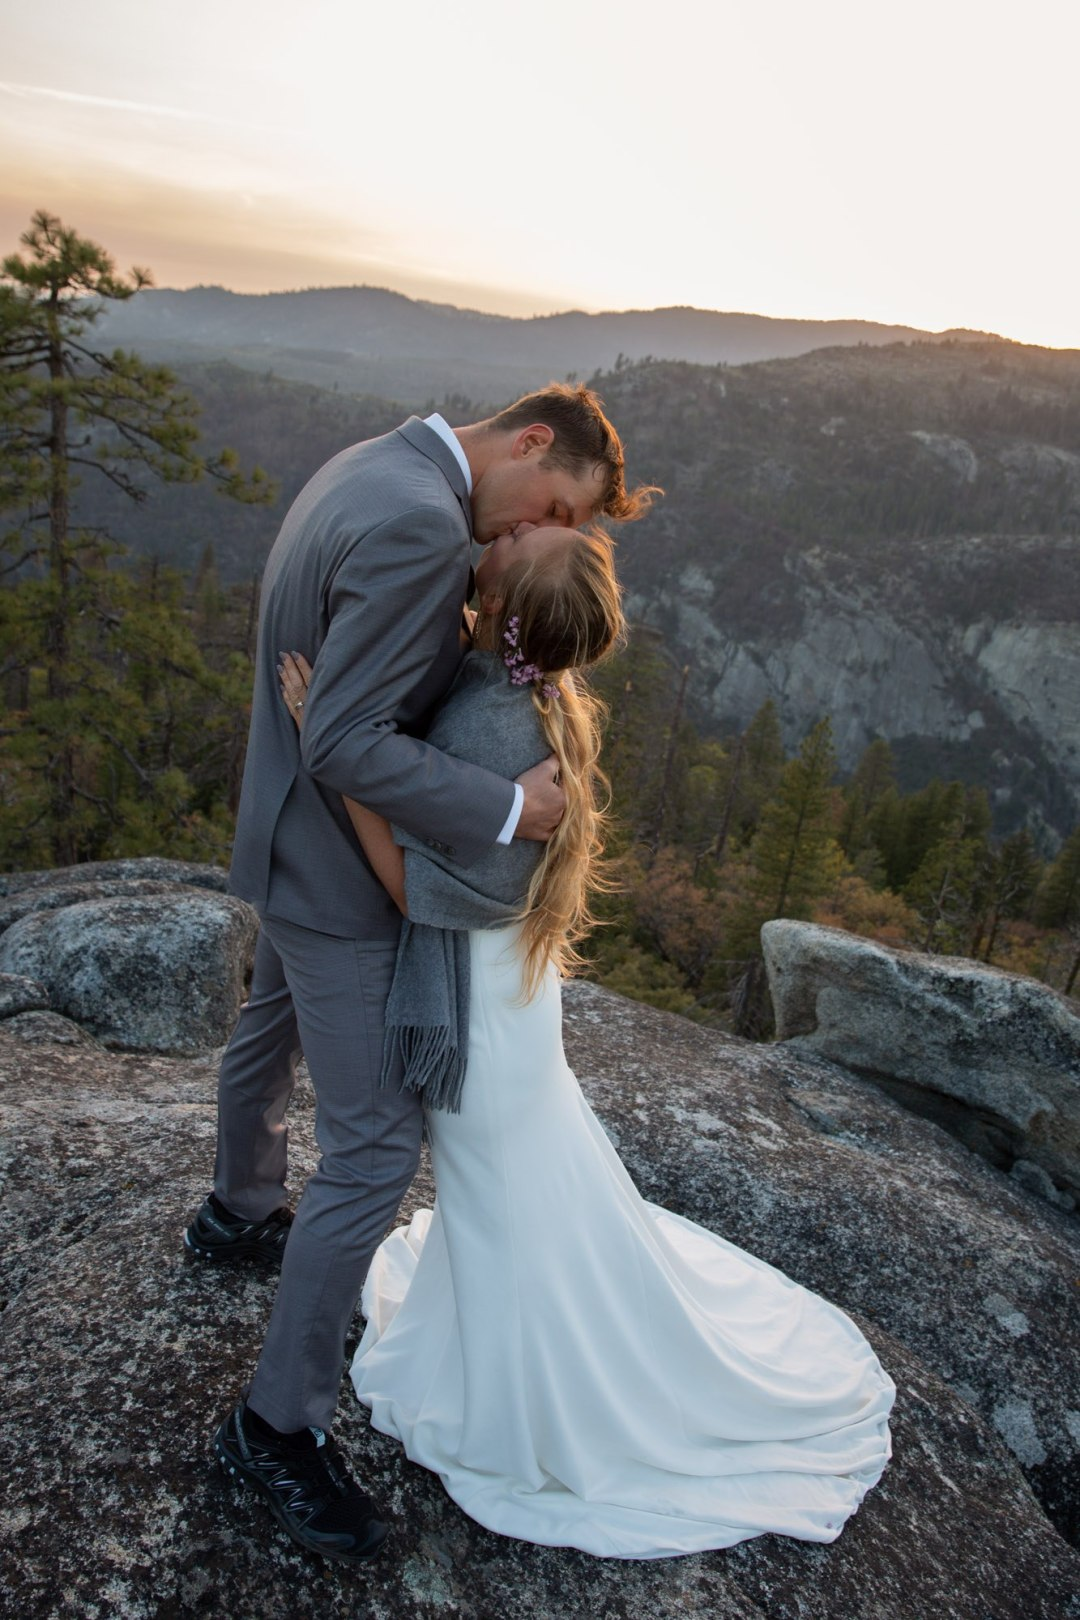 Sneaking kisses during a Yosemite sunset elopement